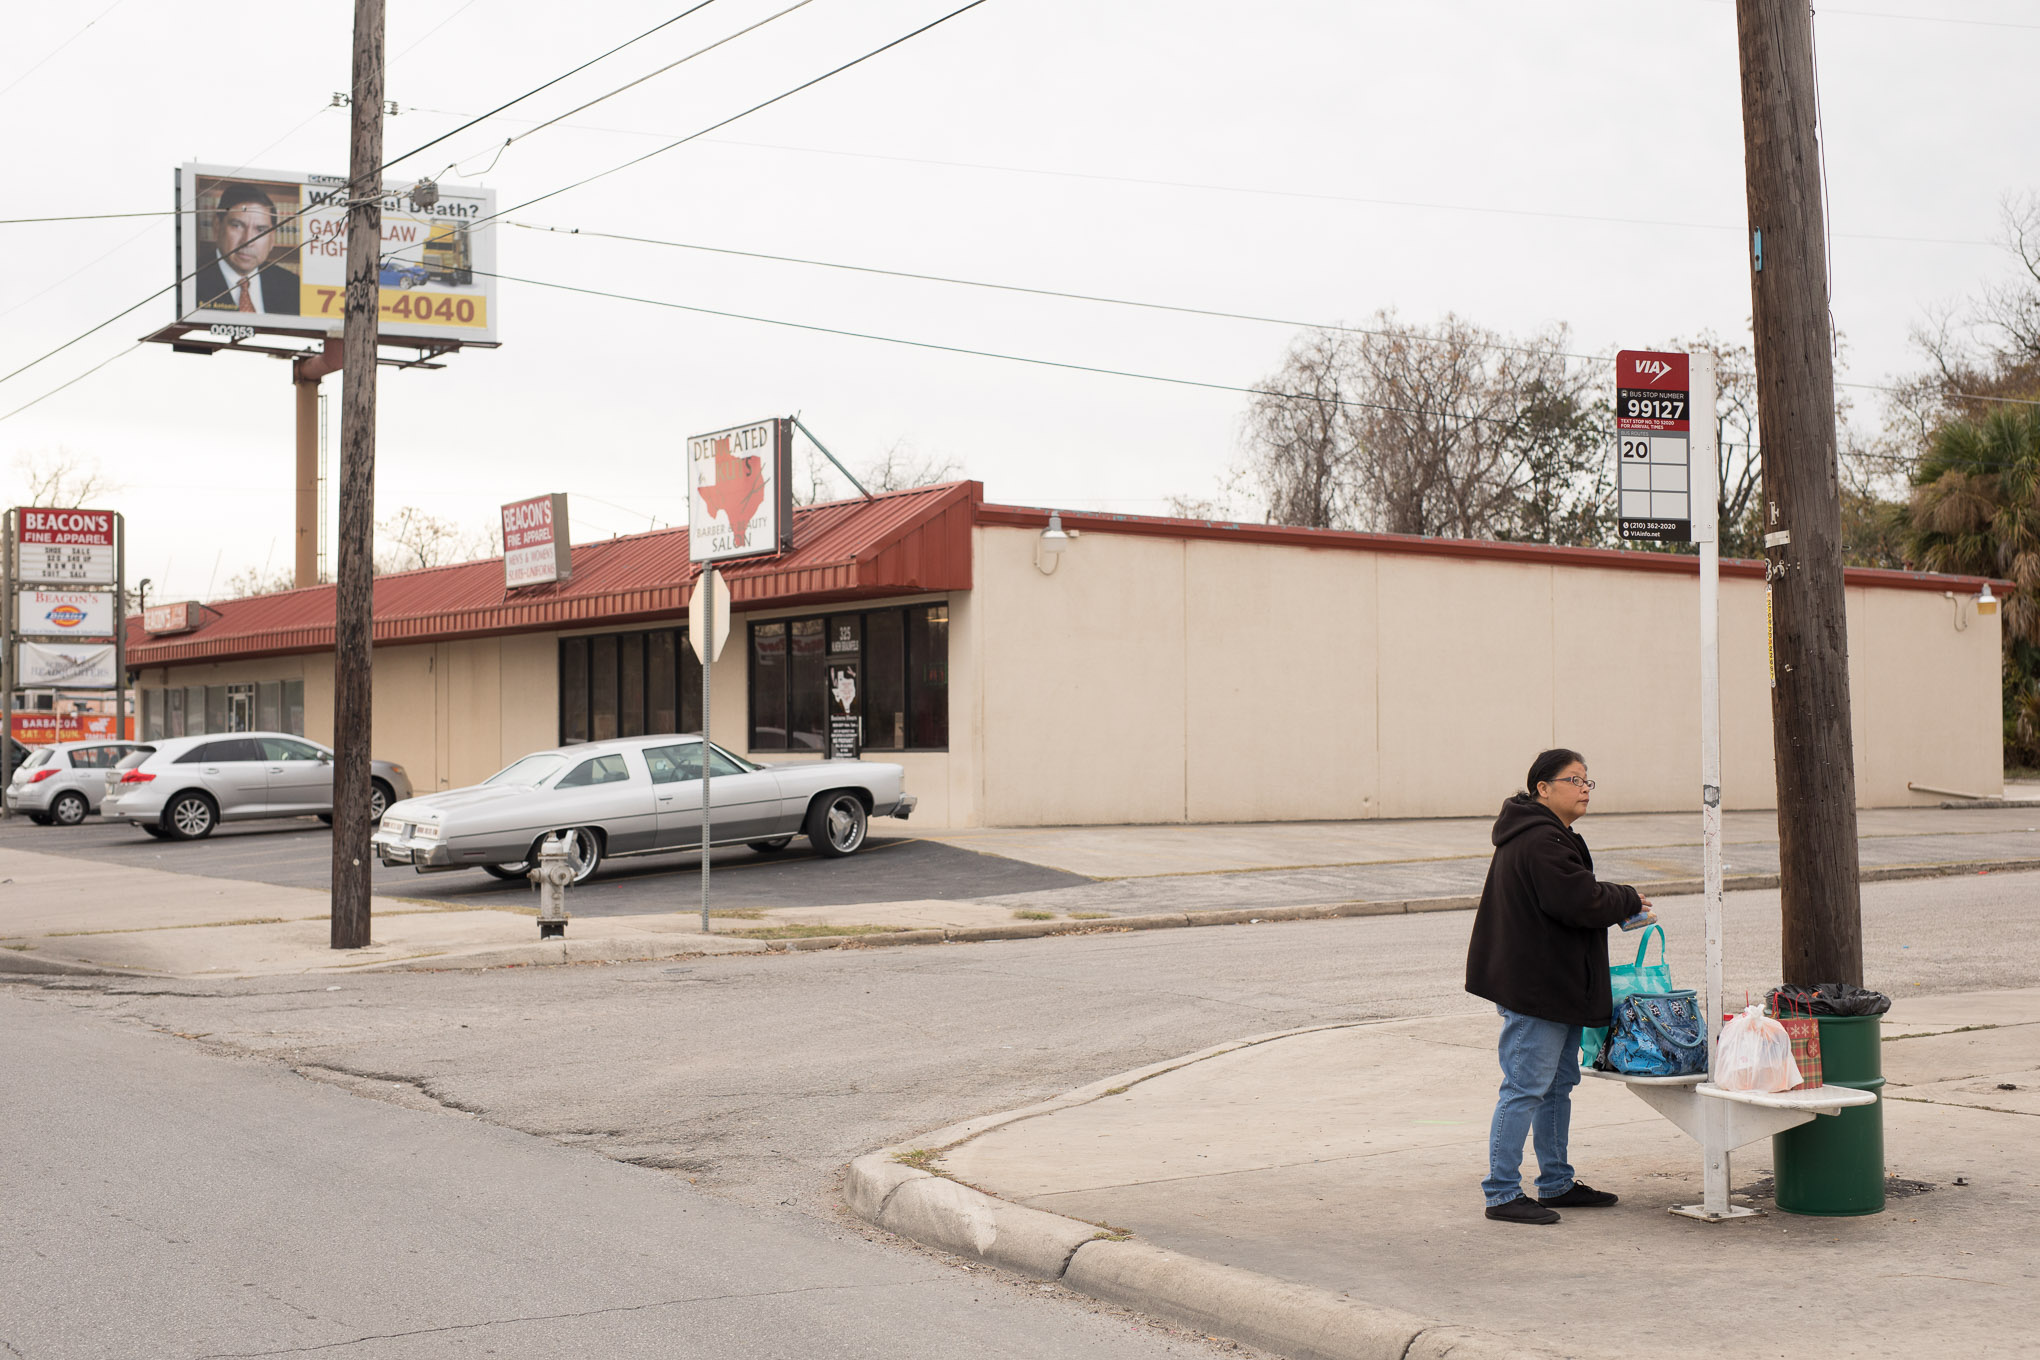 Josie Rios waits at an unsheltered bus stop at the intersection of N. New Braunfels and E. Crockett.